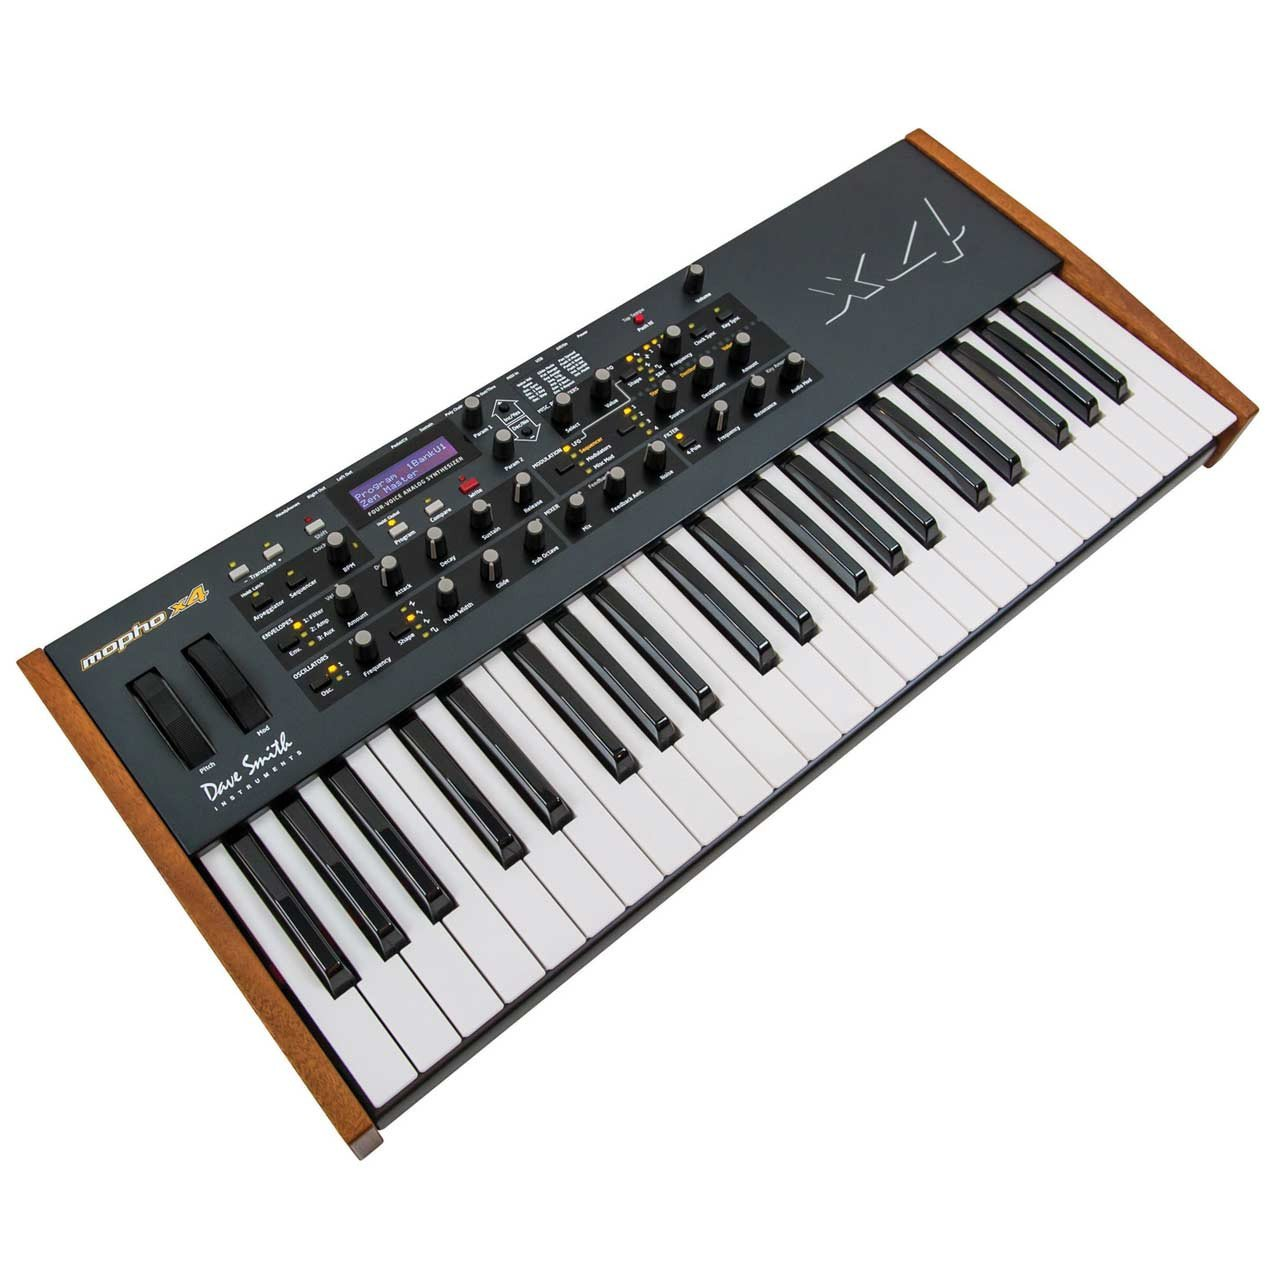 dave smith instruments dsi mopho x4 4 voice analogue synthesizer sounds easy. Black Bedroom Furniture Sets. Home Design Ideas